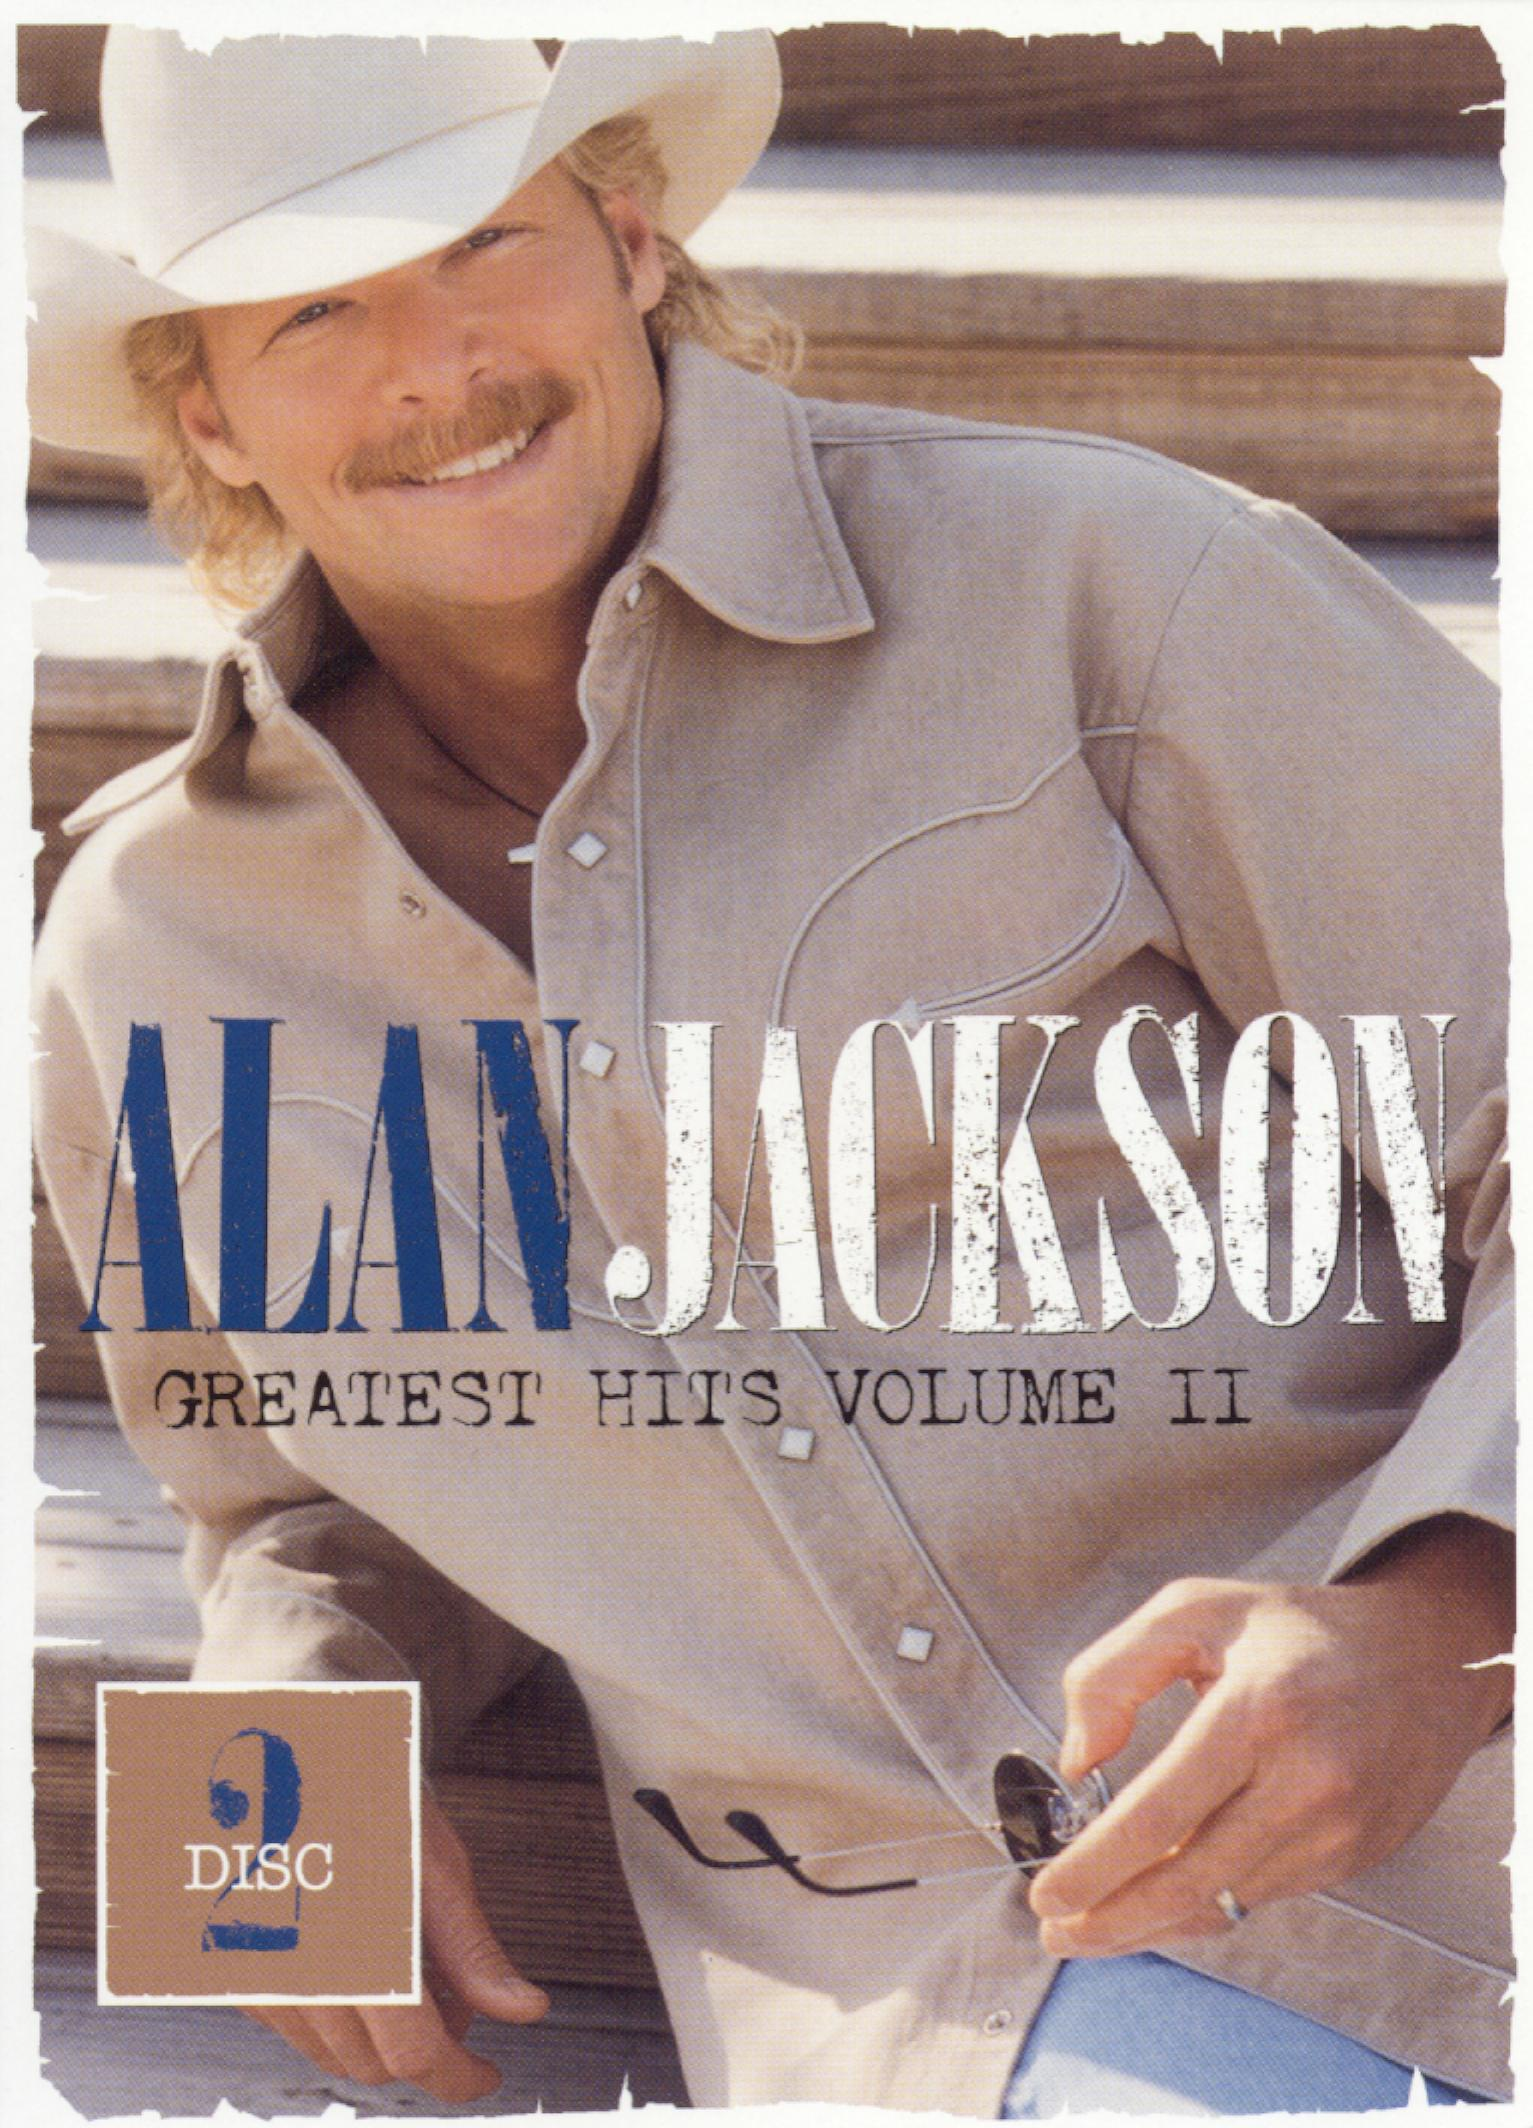 Alan Jackson: Greatest Hits, Vol. II - Part 2